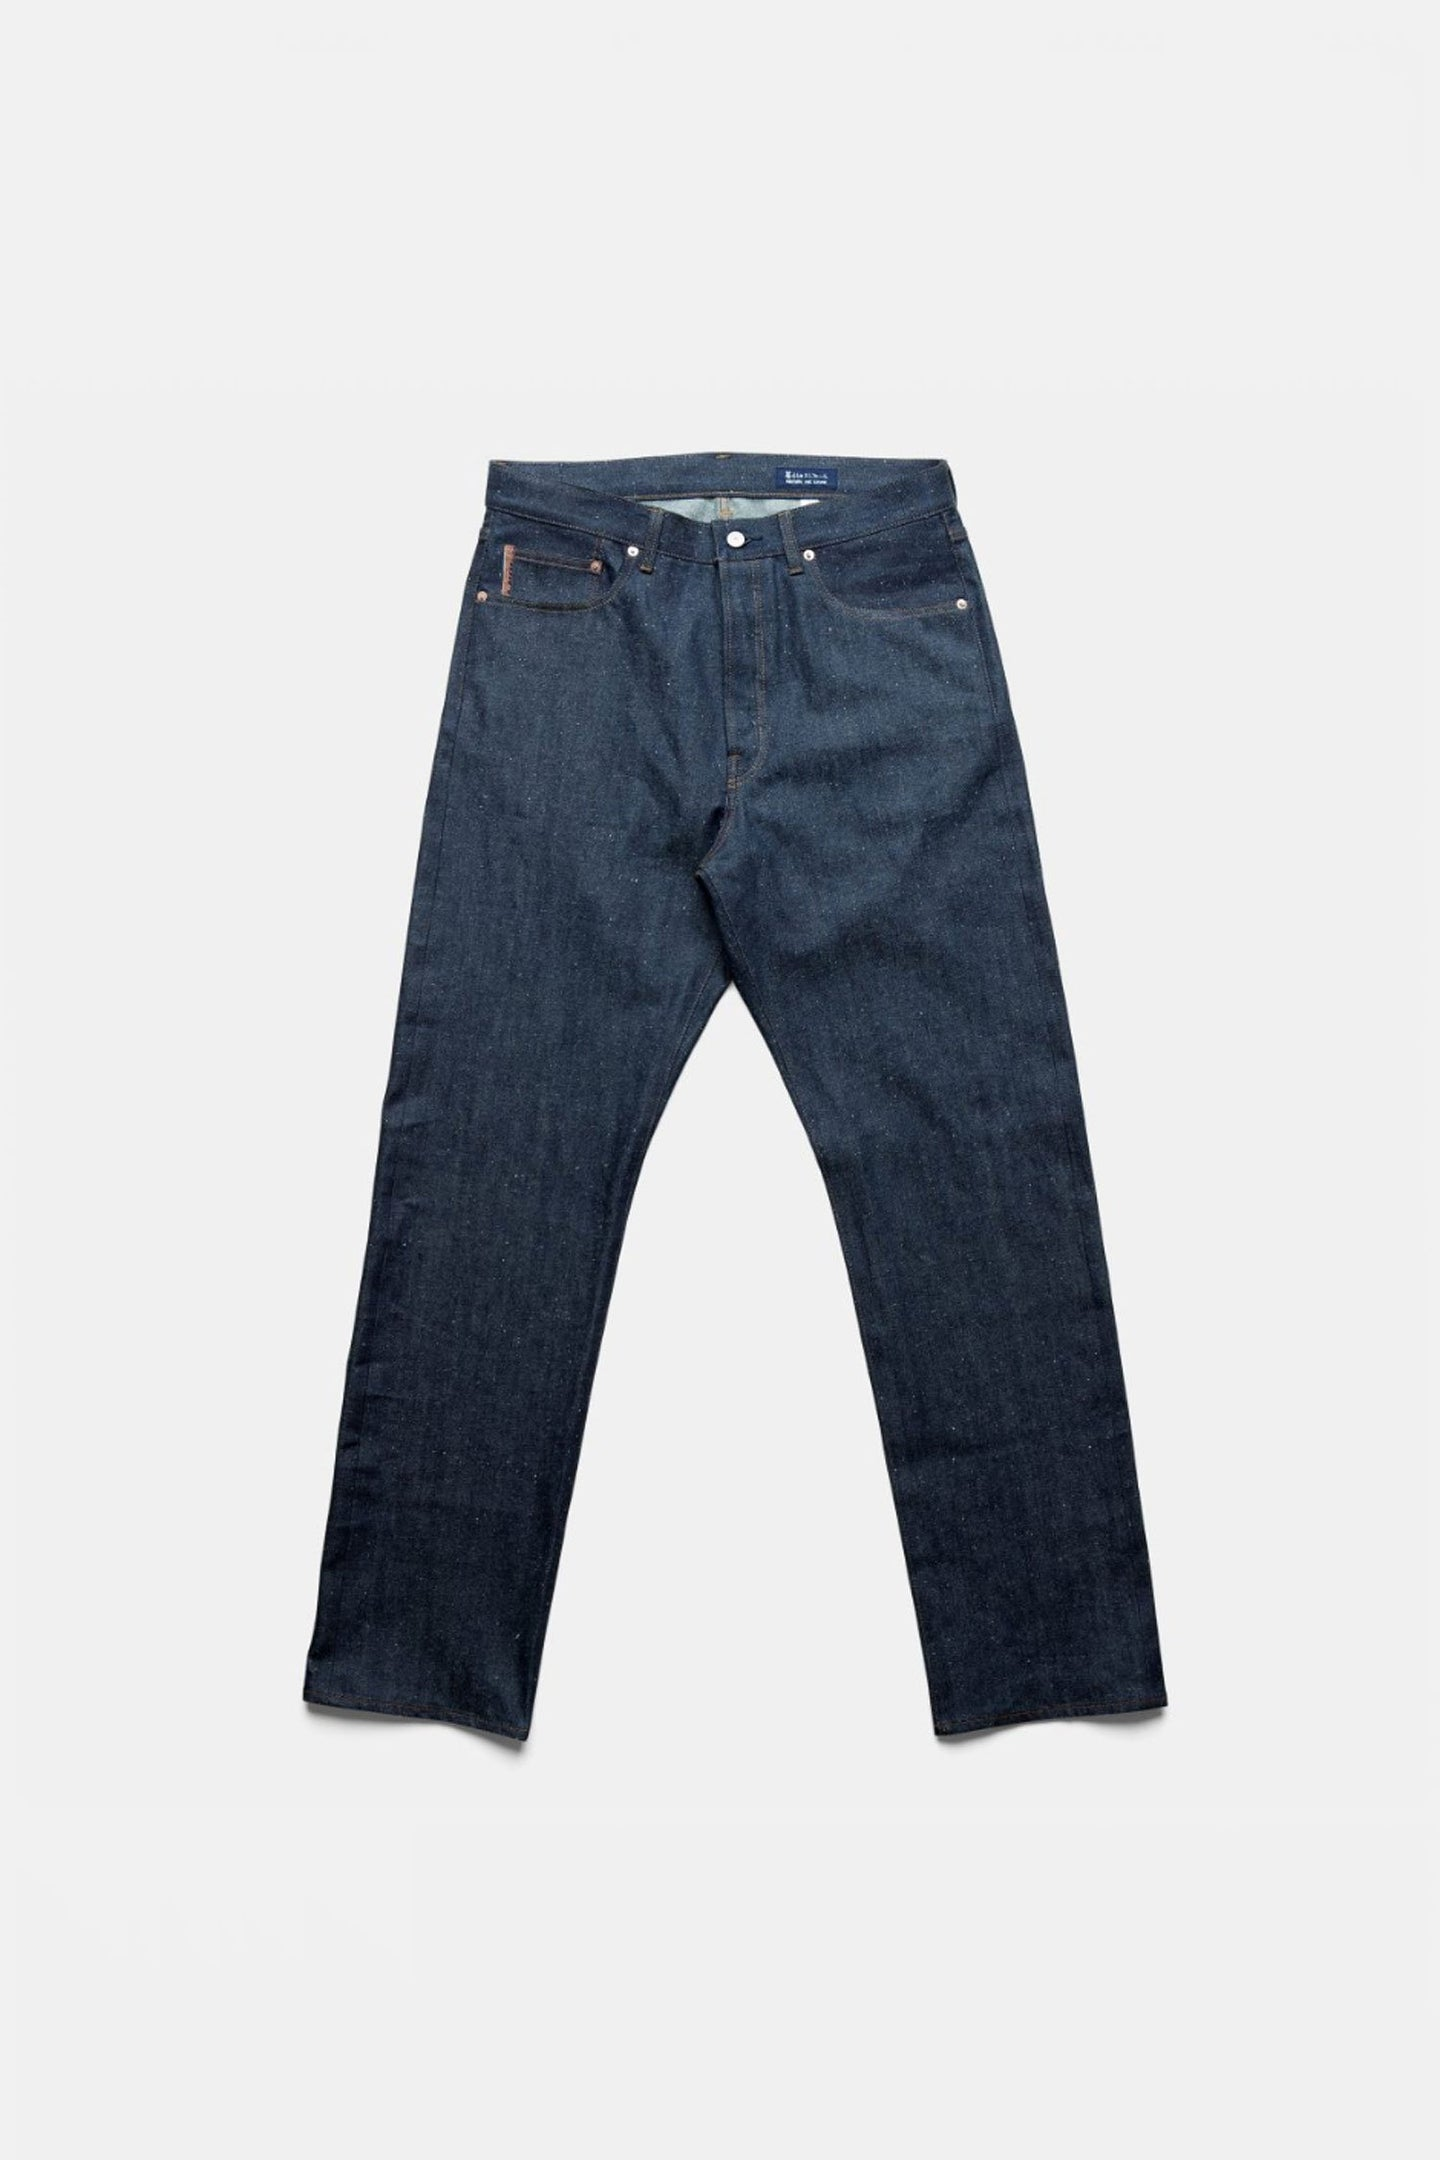 Straight Denim Pants in Washed Indigo by Cottle